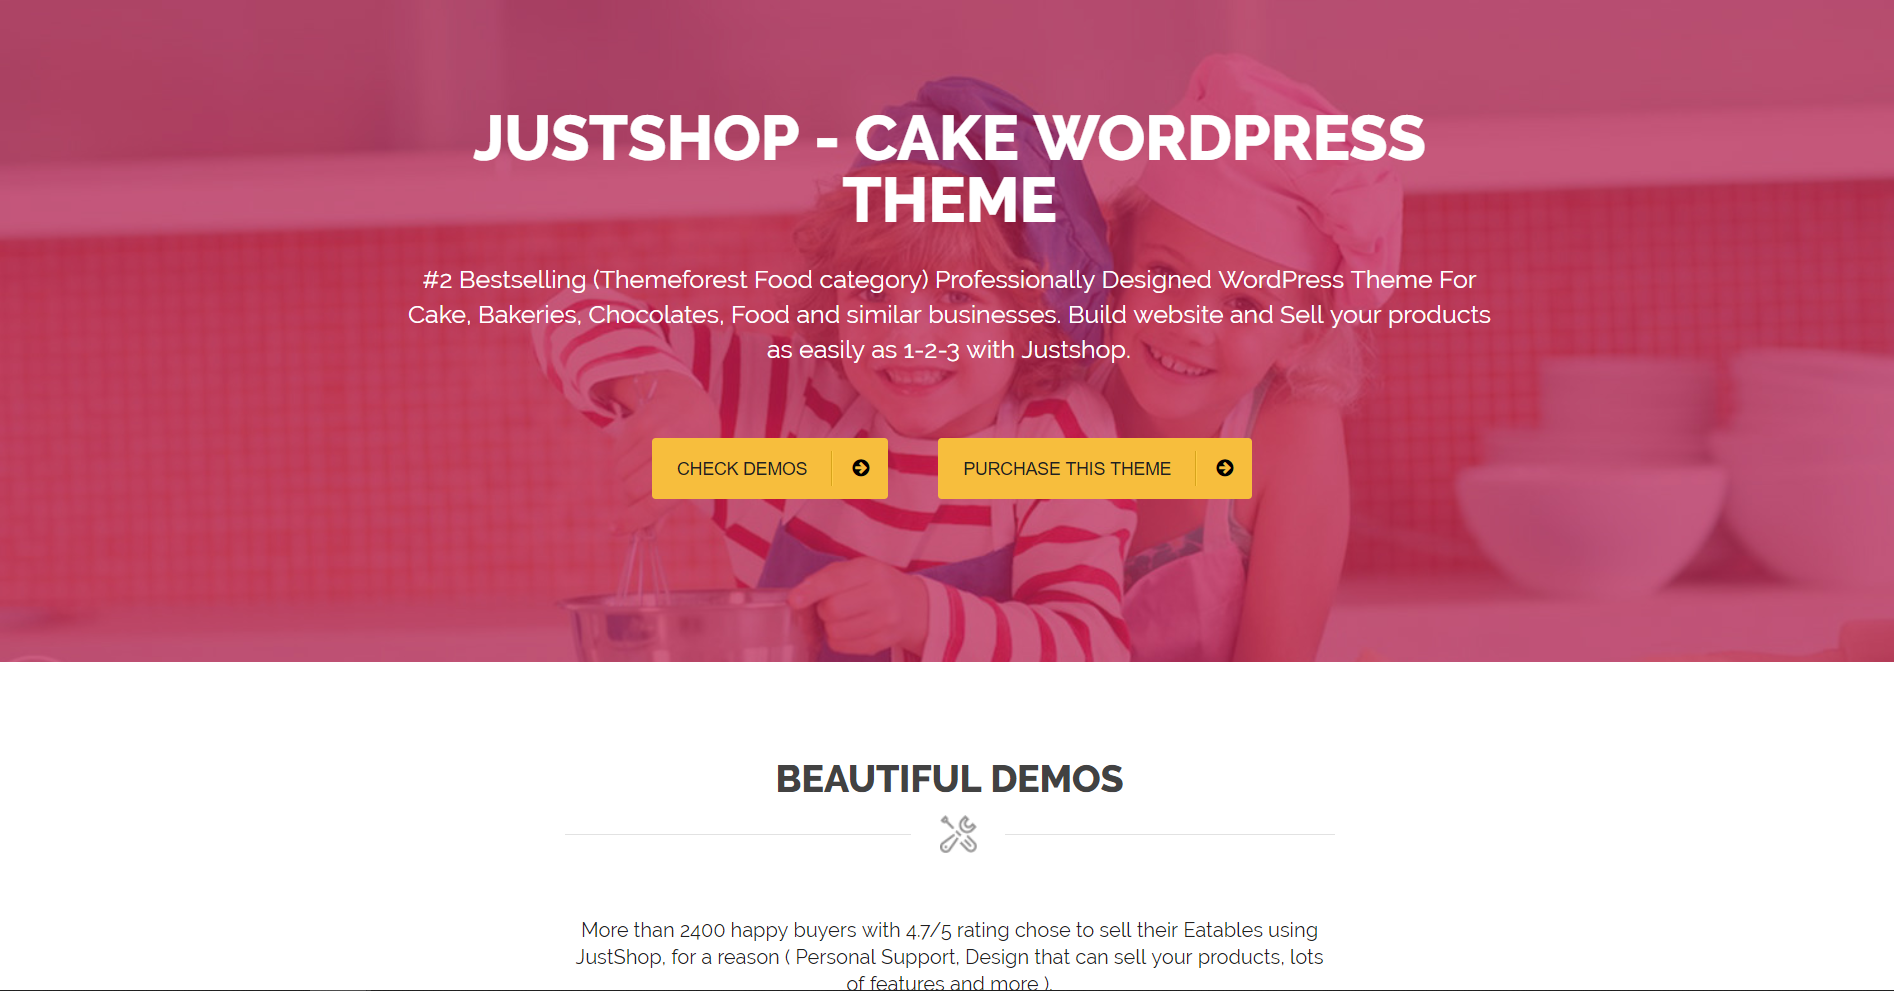 46. Cake Bakery WordPress Theme - Justshop